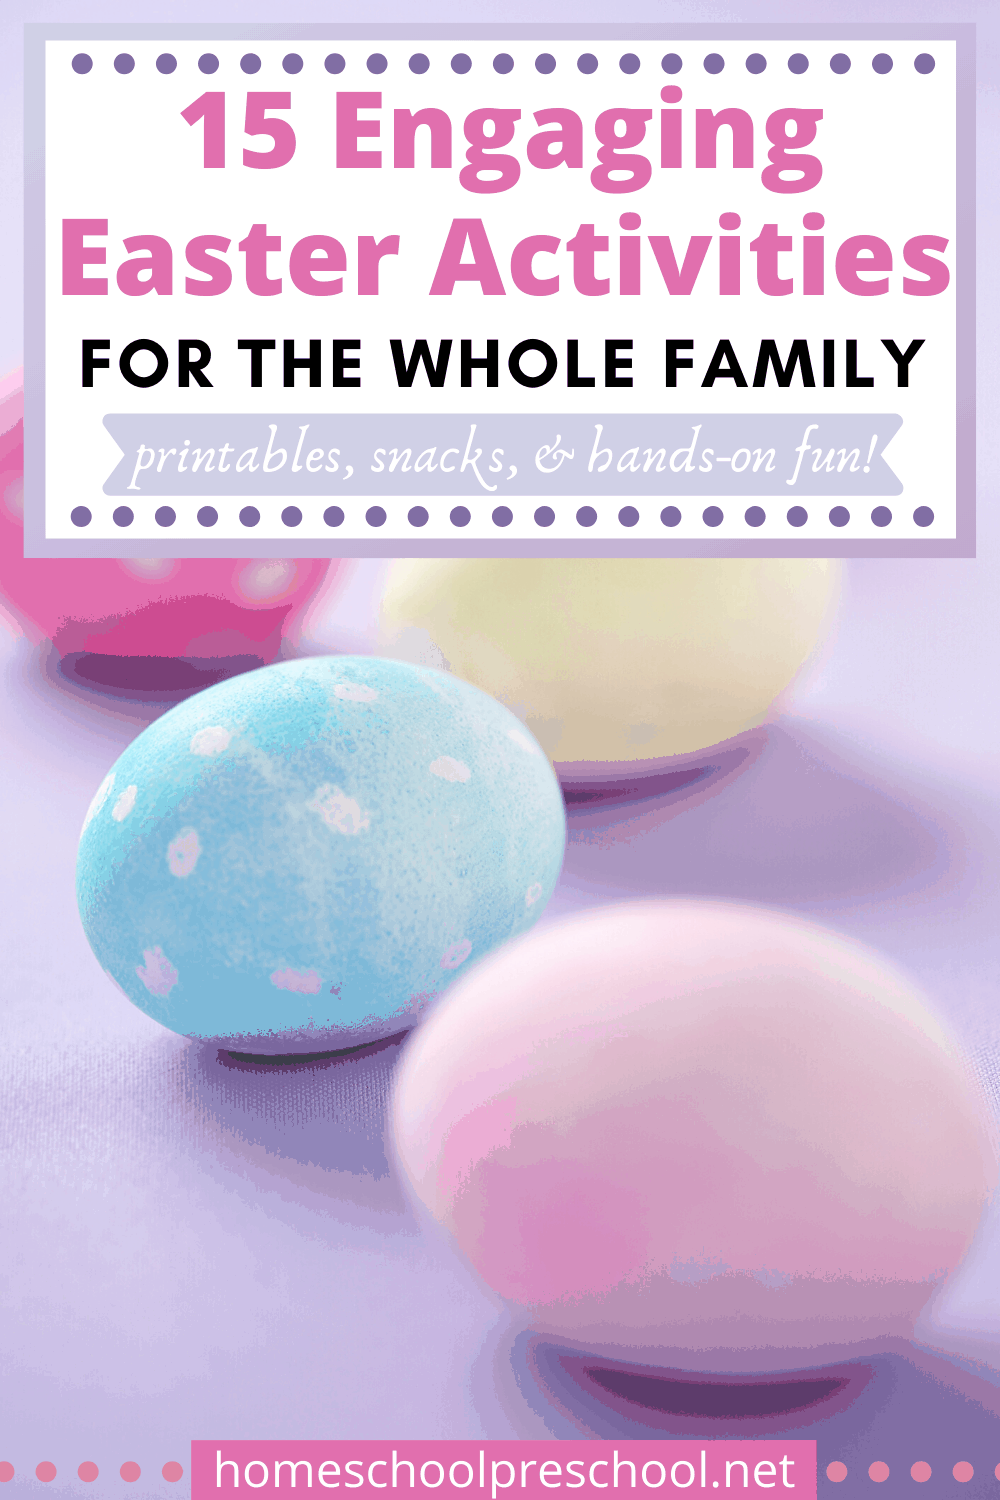 Enjoy these preschool Easter activities as a family as you learn more about spring, Jesus, and the real meaning of Easter!